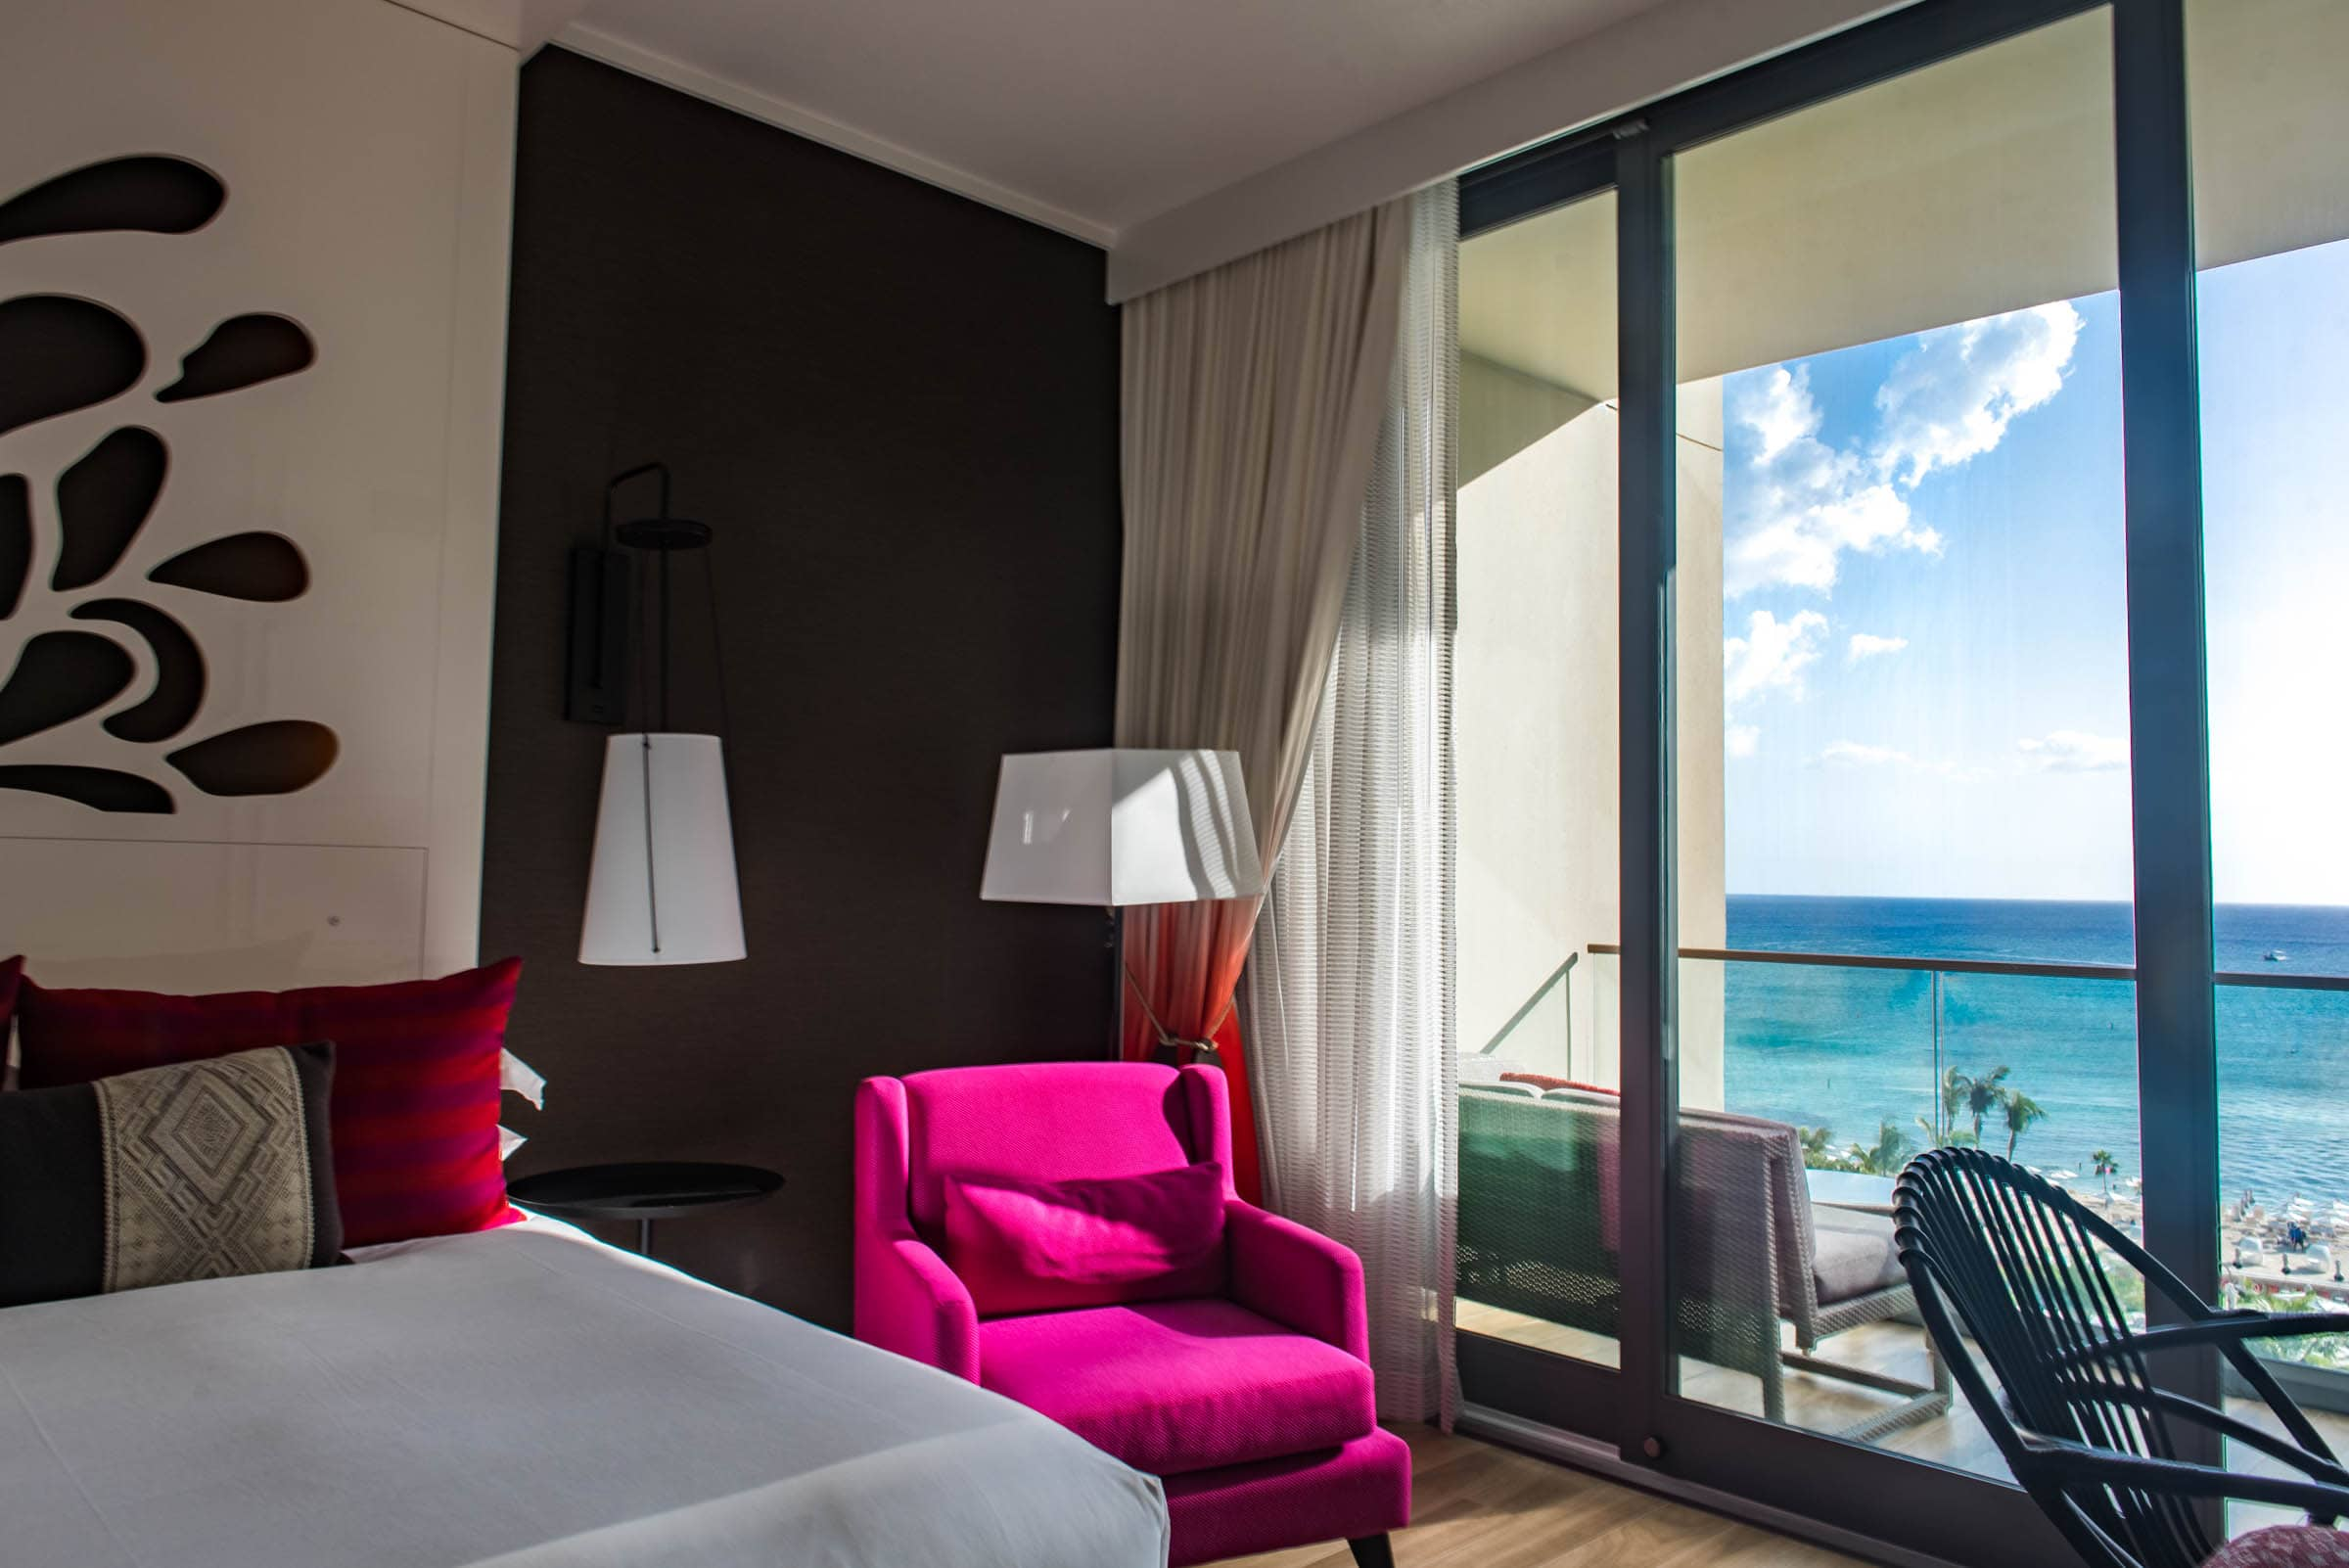 The rooms are modern, brightly accented, and feature huge windows.